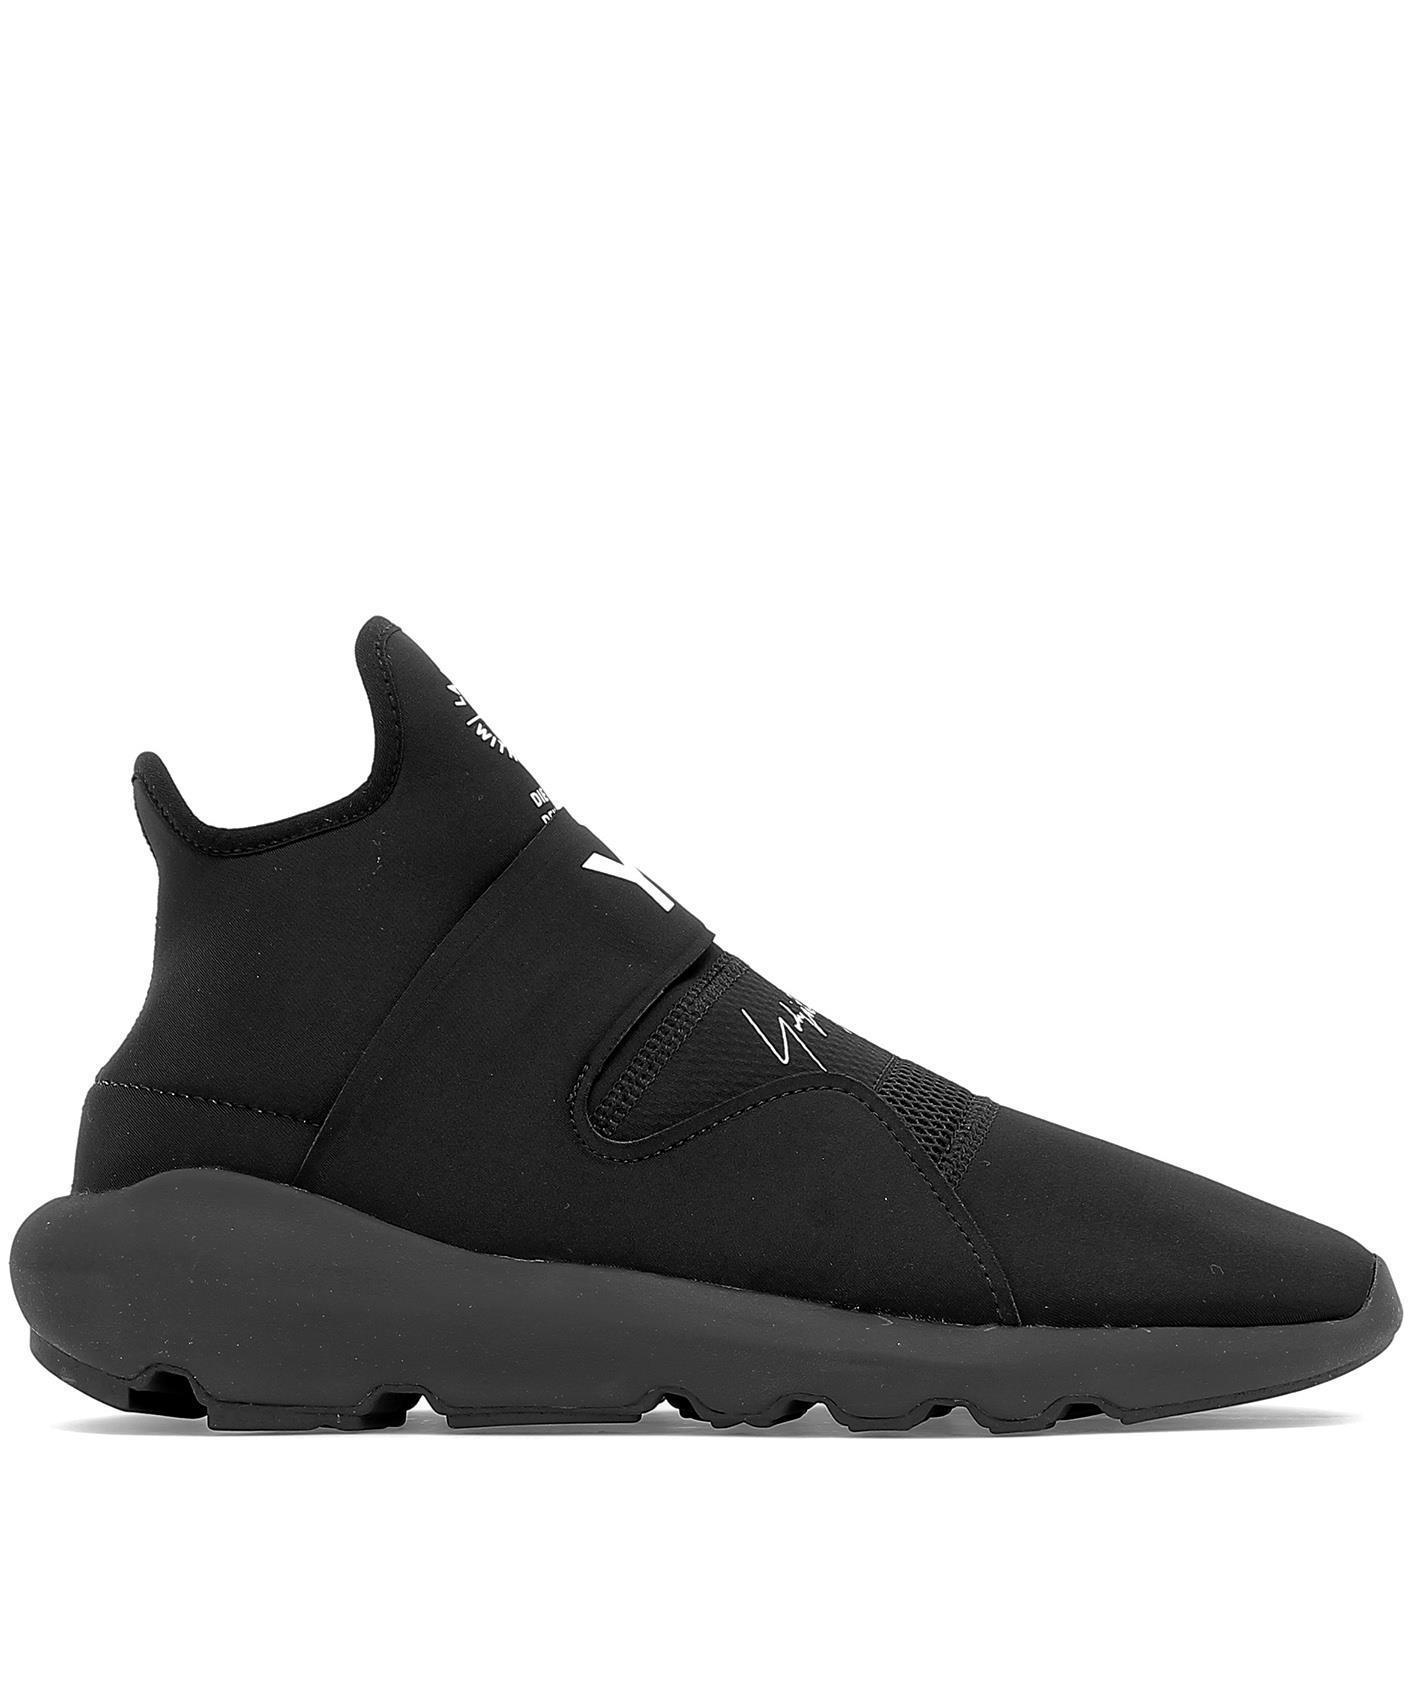 a2082d947cf5e Lyst - Y-3 Suberou Slip-on Sneakers in Black for Men